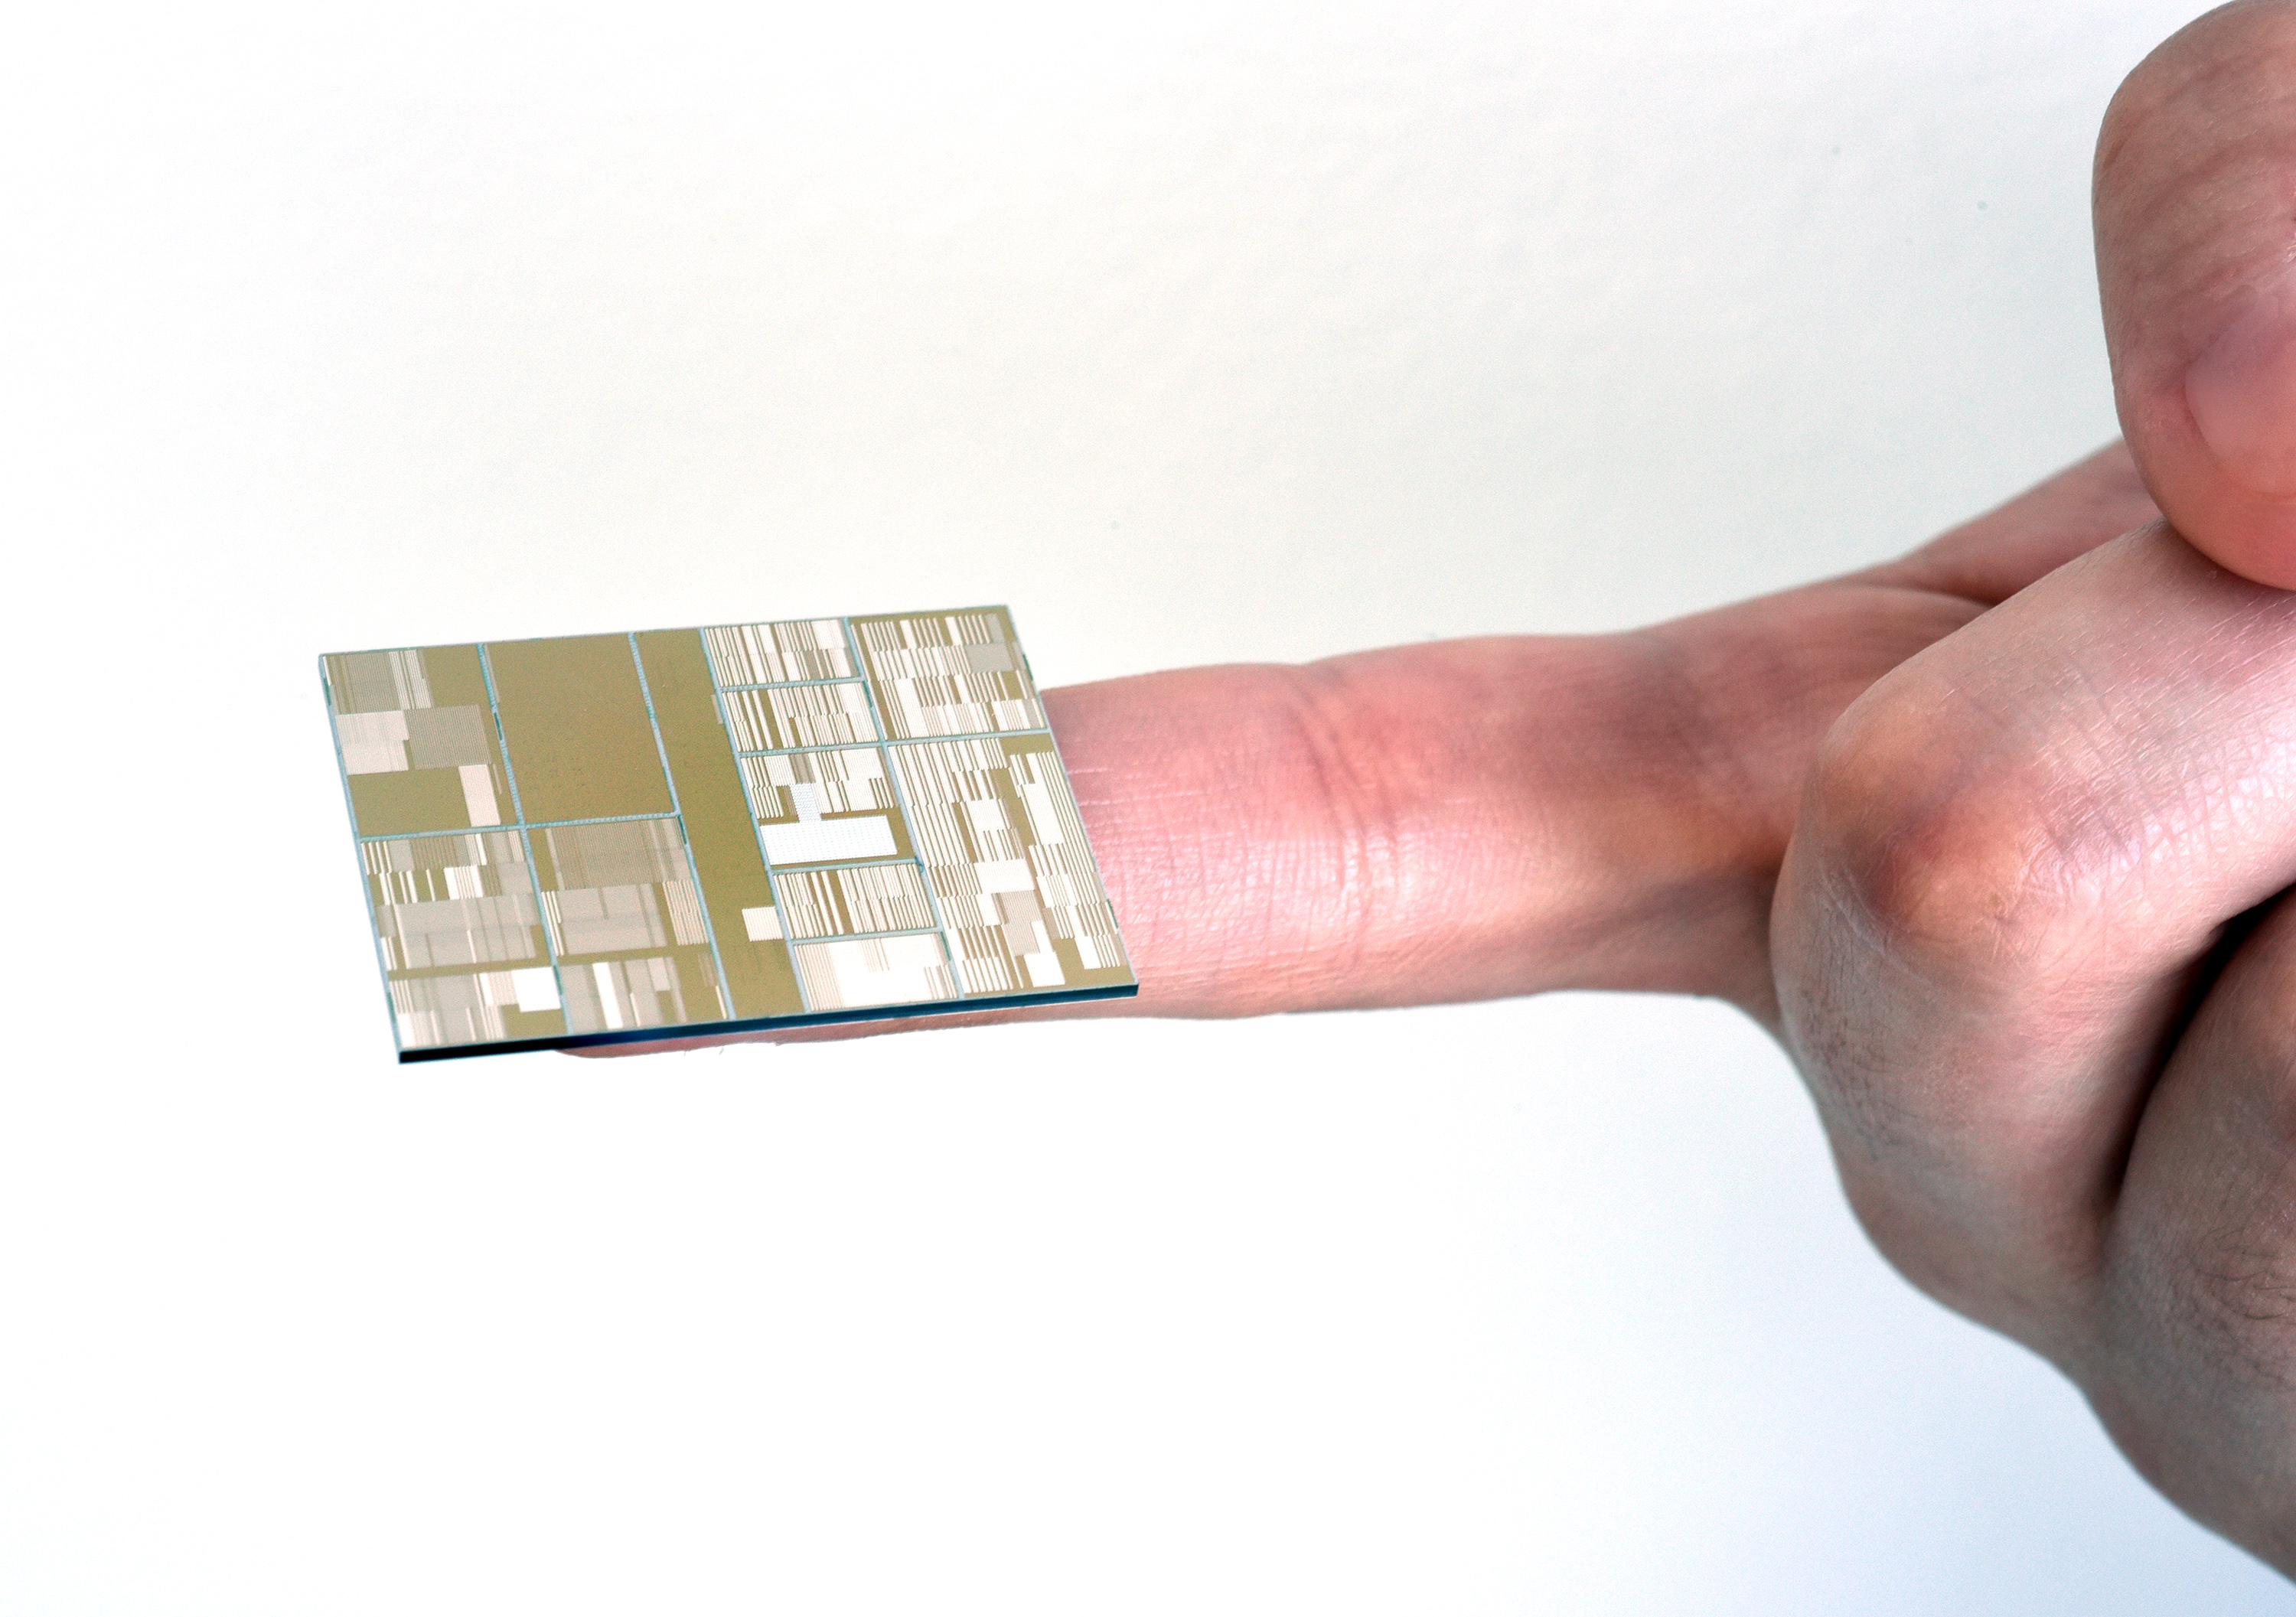 One of the 7nm test chips, created by IBM/SUNY